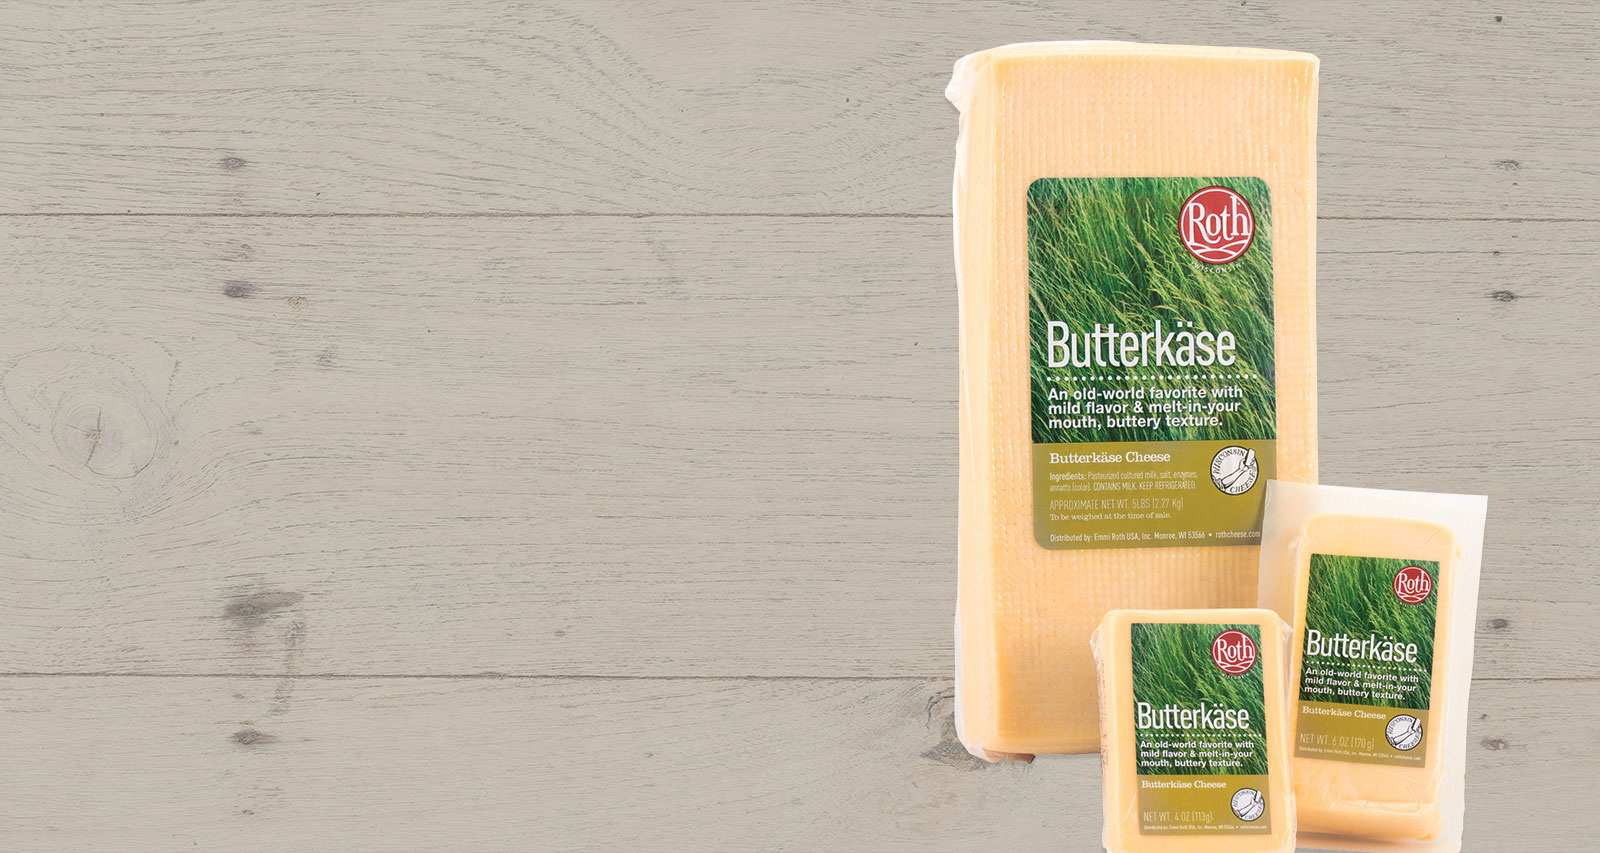 Meet your new cheese obsession.